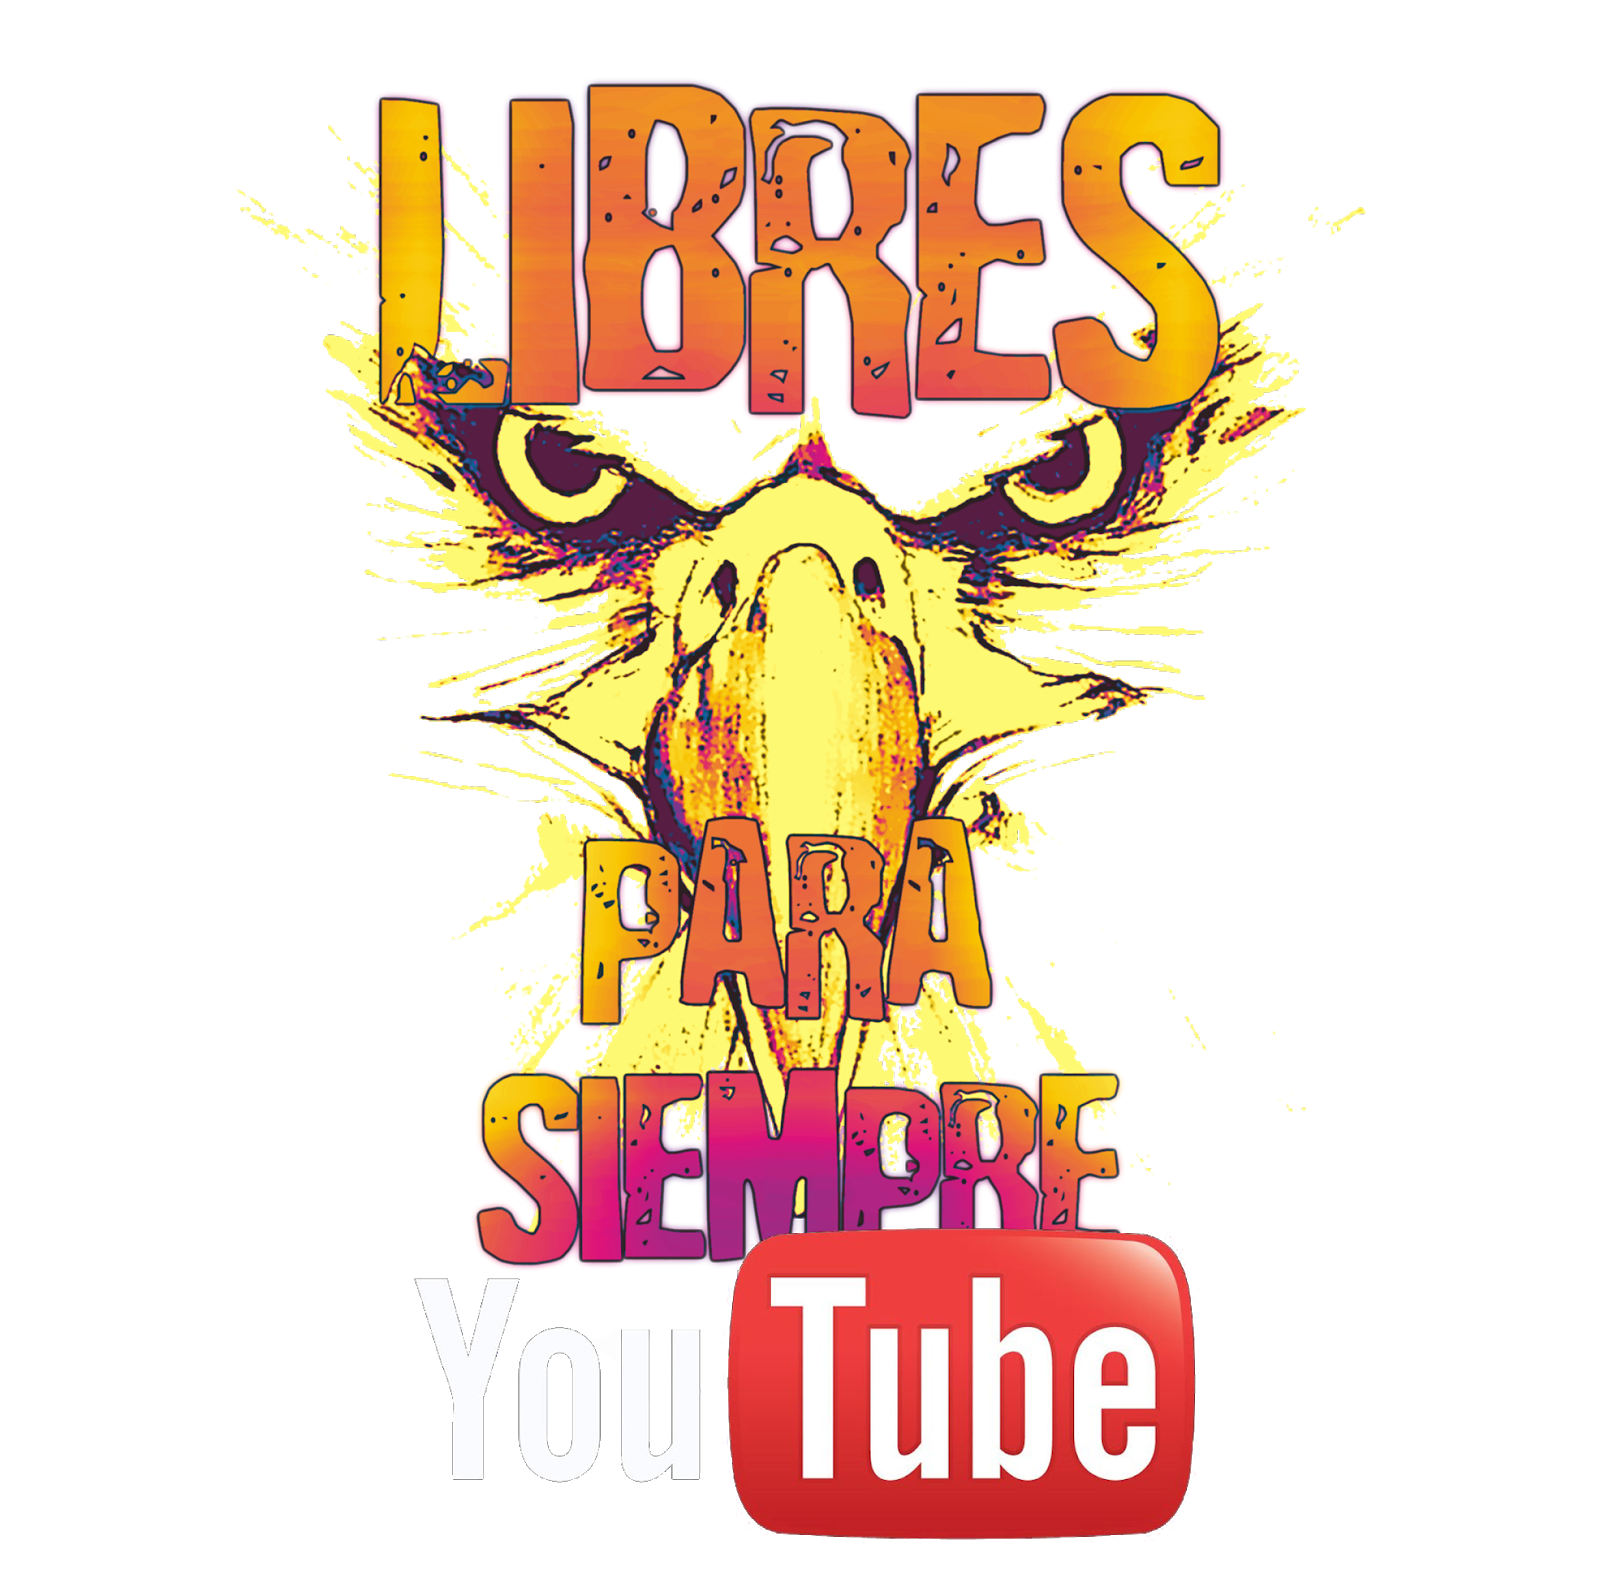 SIGUE NUESTRO CANAL DE YOUTUBE